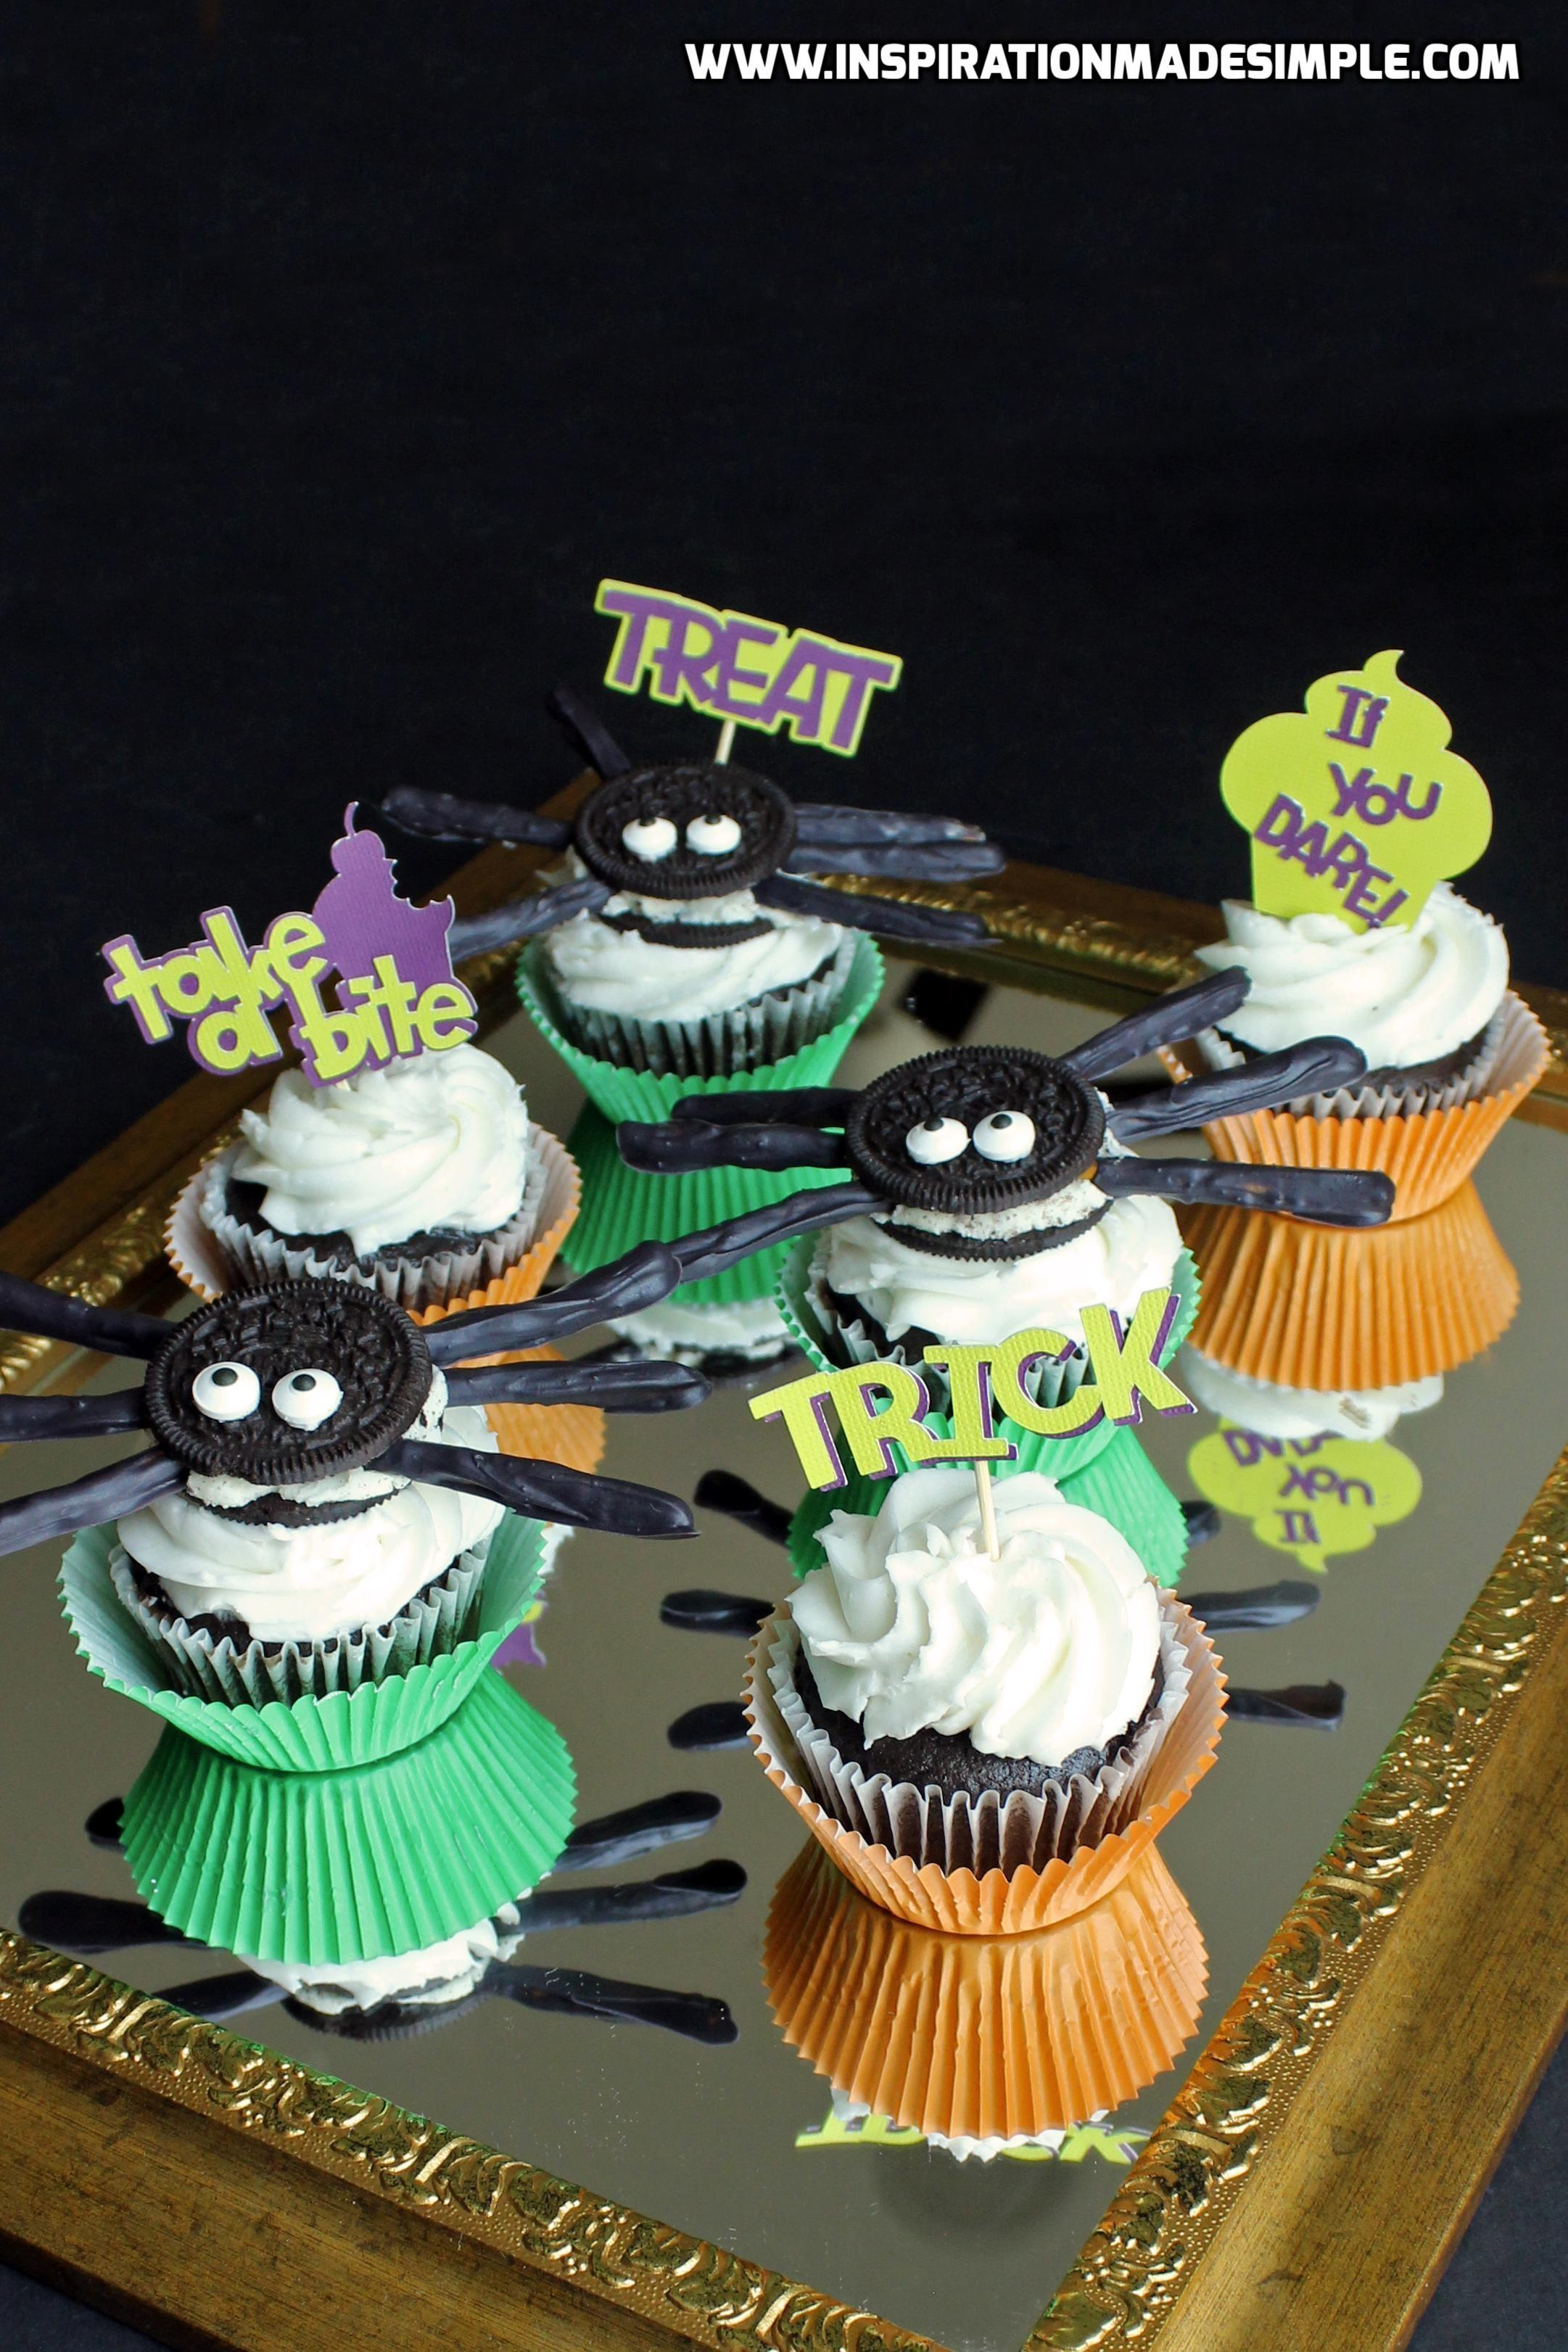 Halloween Cupcake Toppers Inspiration Made Simple